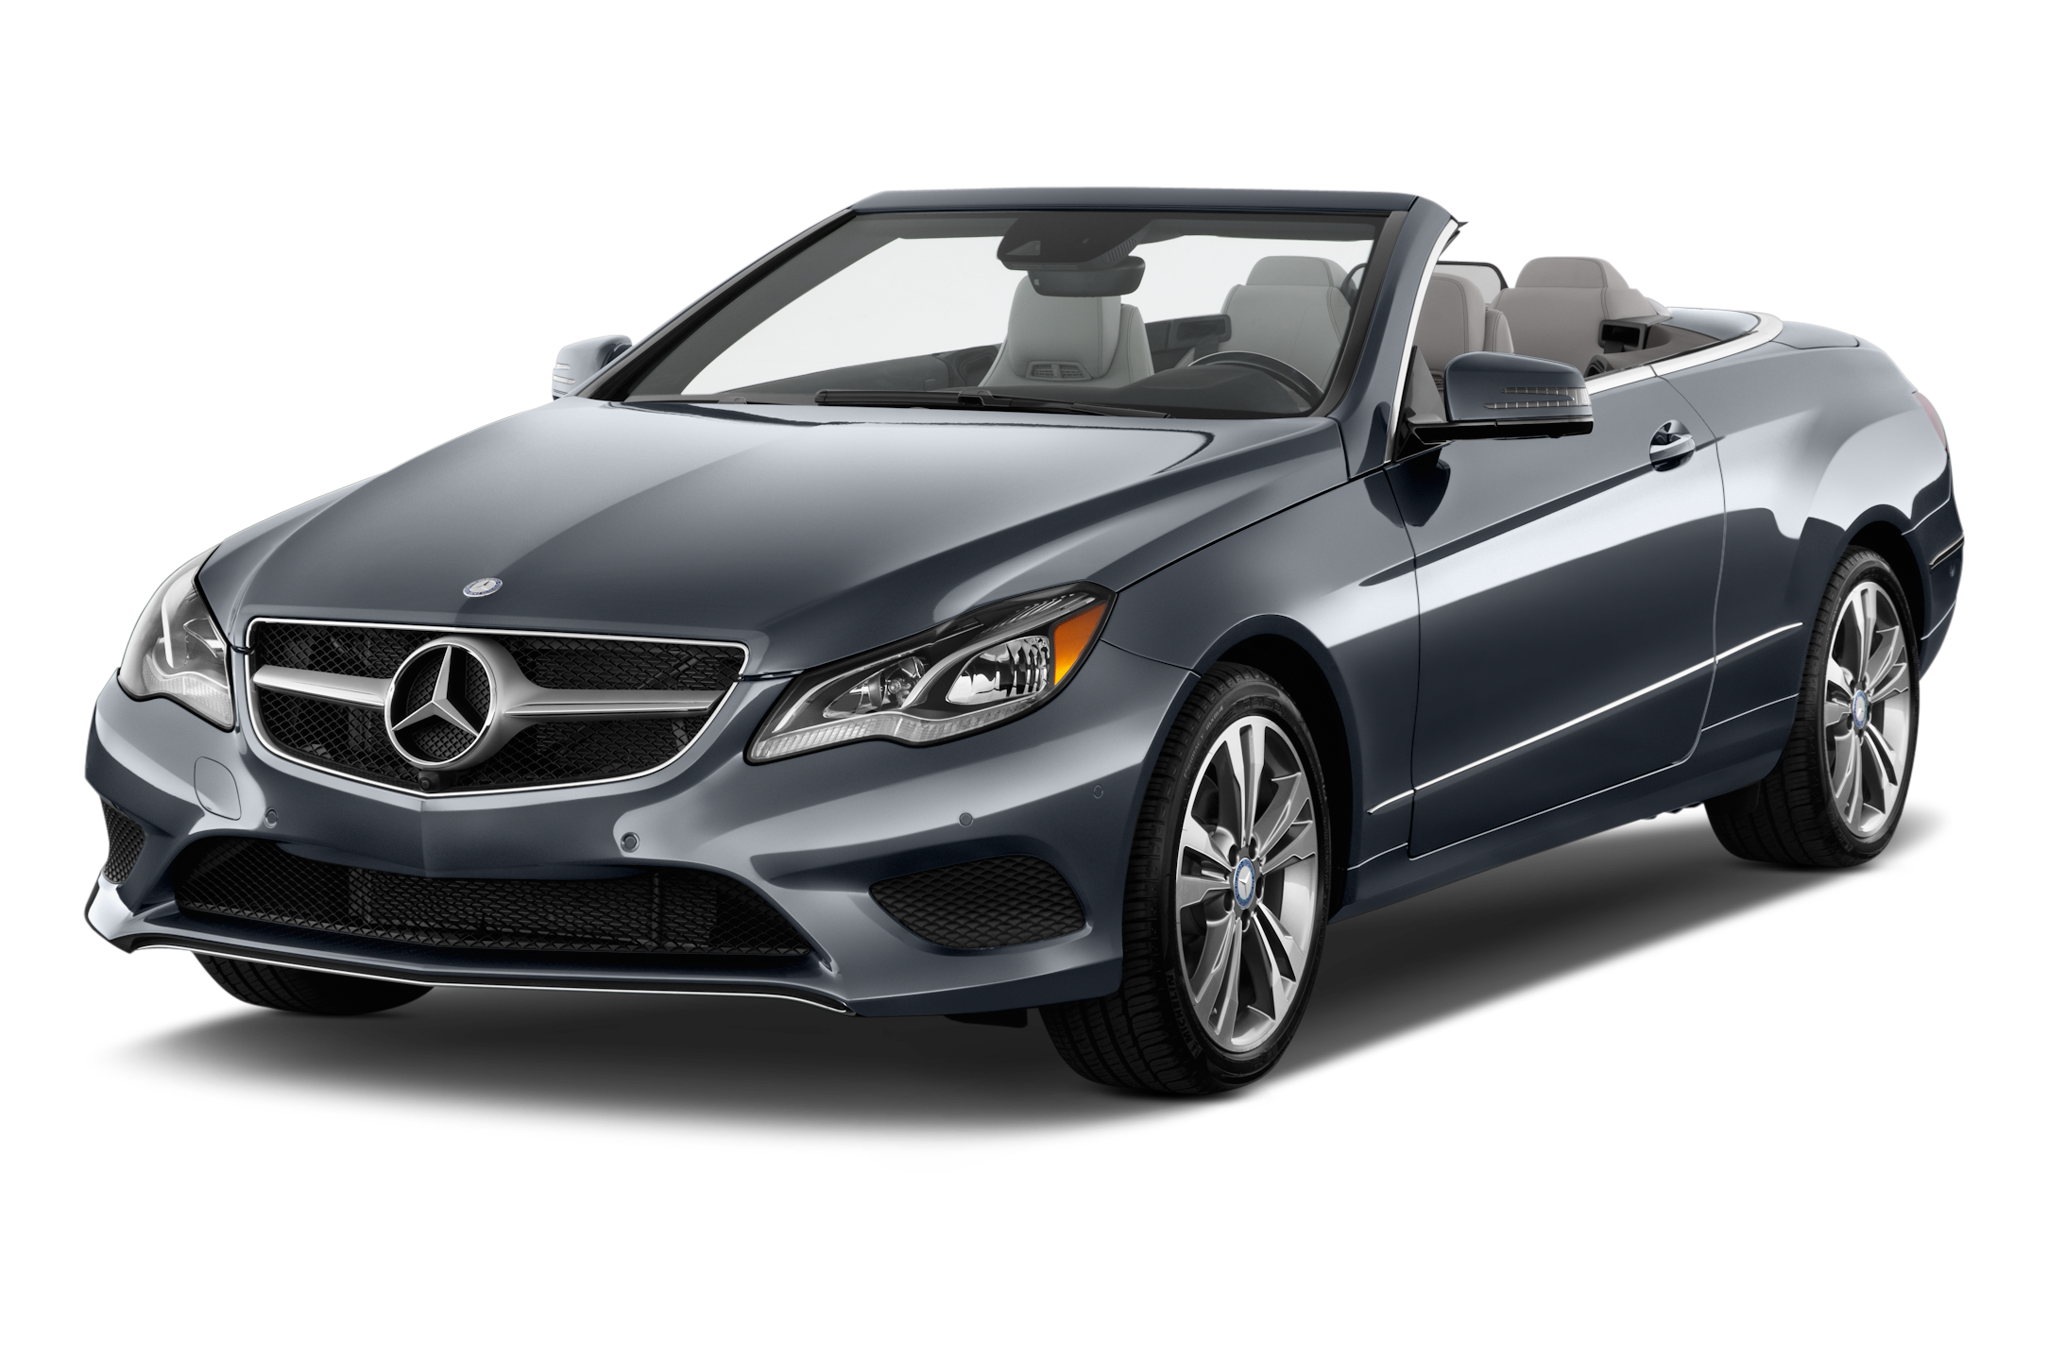 2017 Mercedes-Benz S-Class Cabriolet Opens its Roof Ahead of